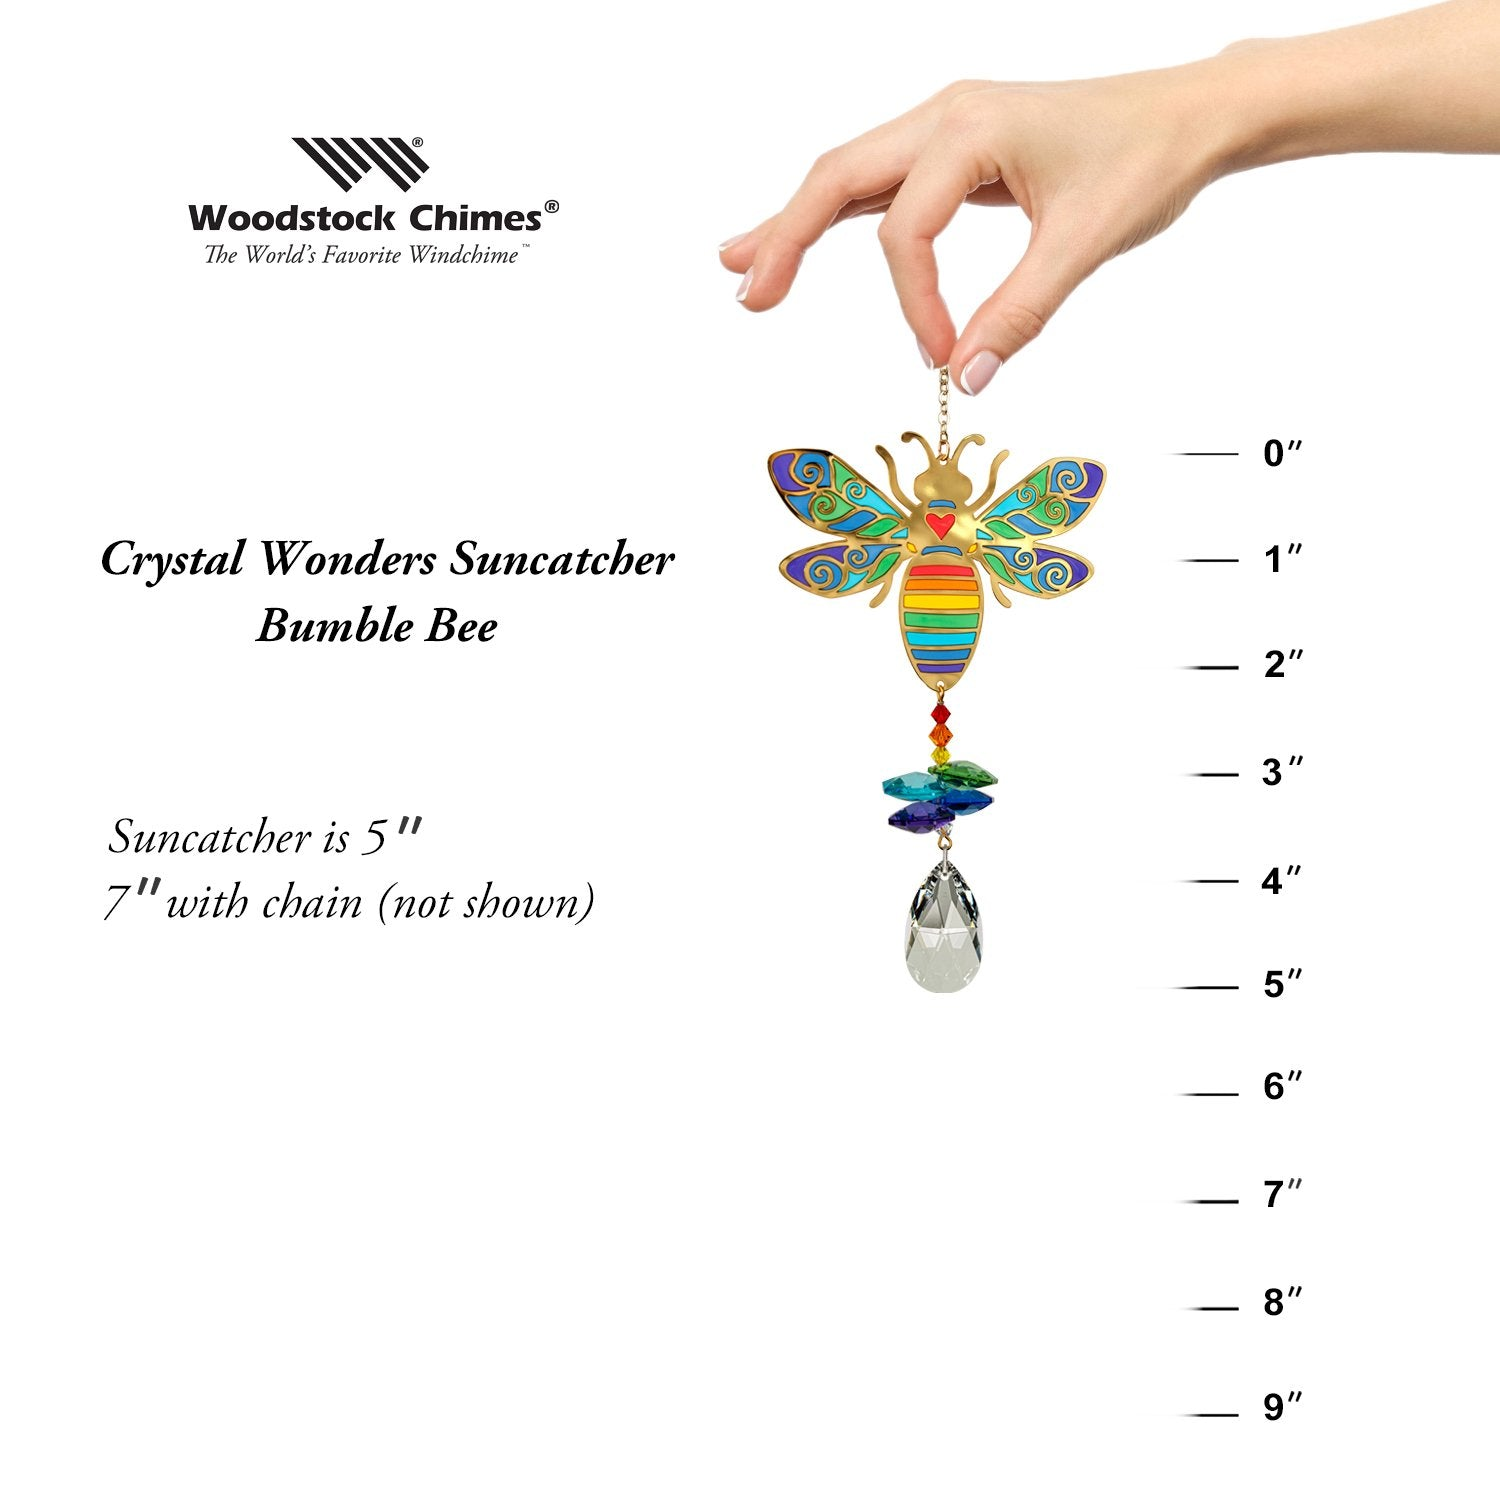 Crystal Wonders - Bumblebee proportion image